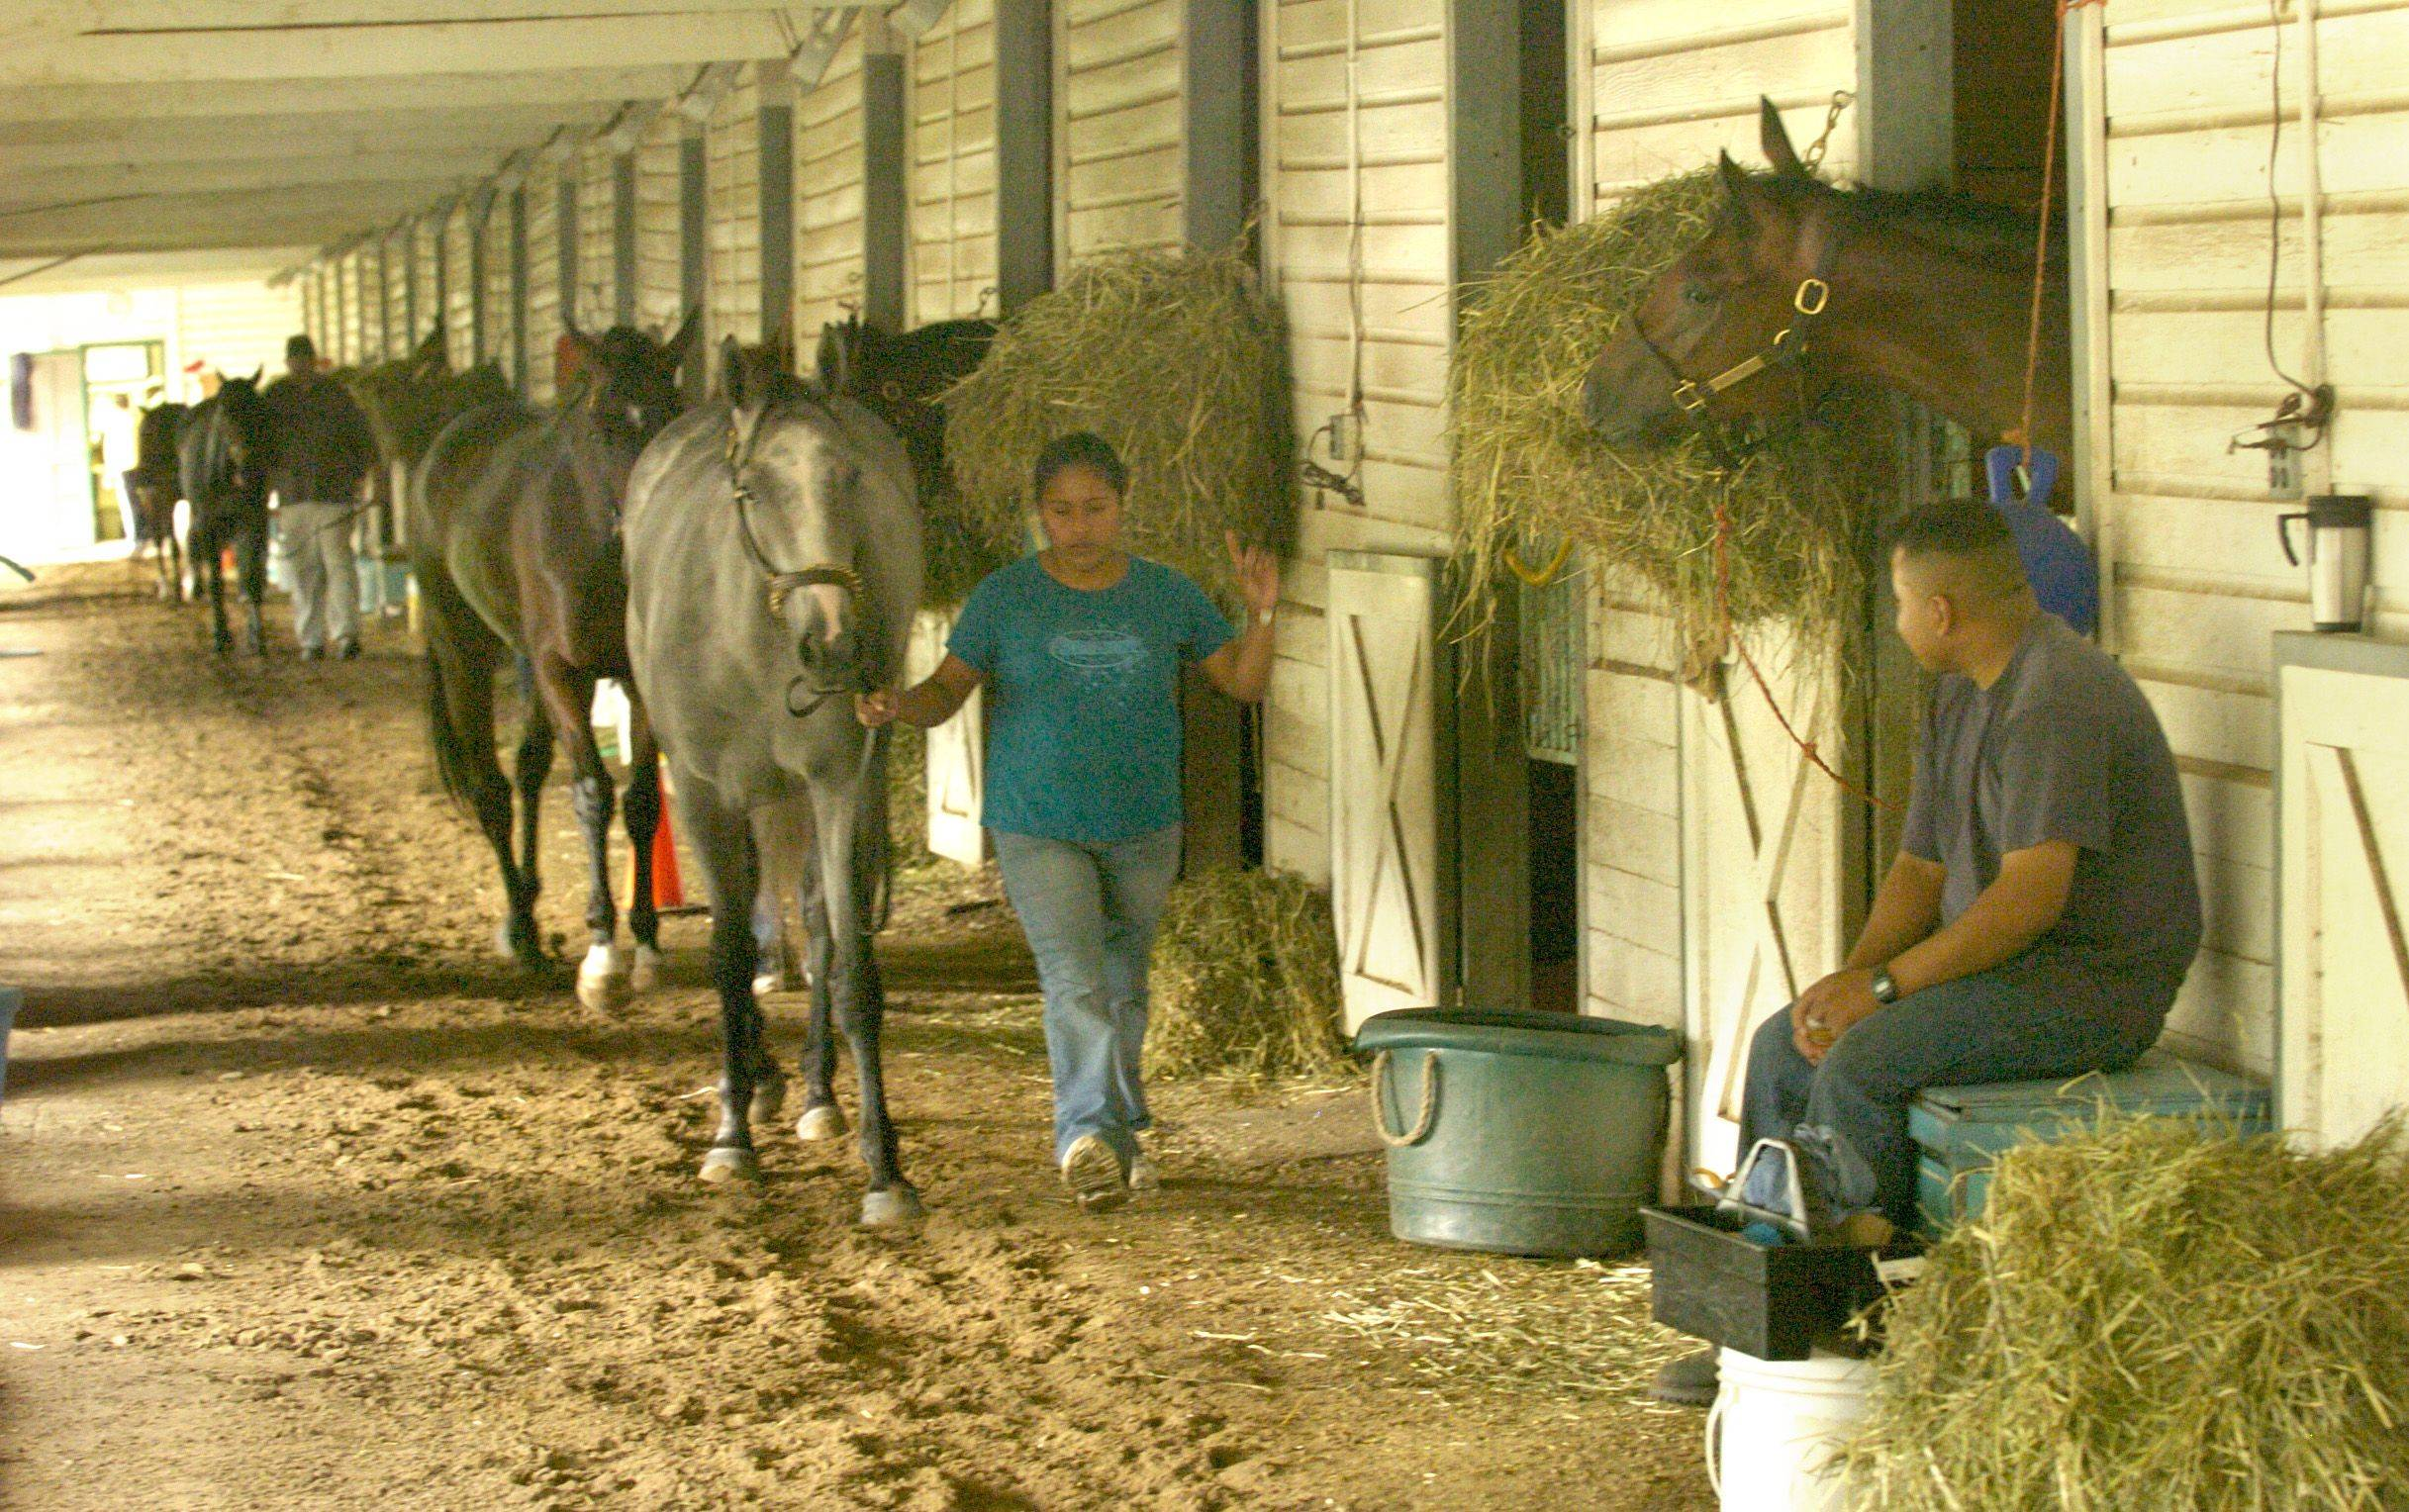 Backstretch workers at Arlington Park don't know what their future holds as business continues to decline at the racetrack.